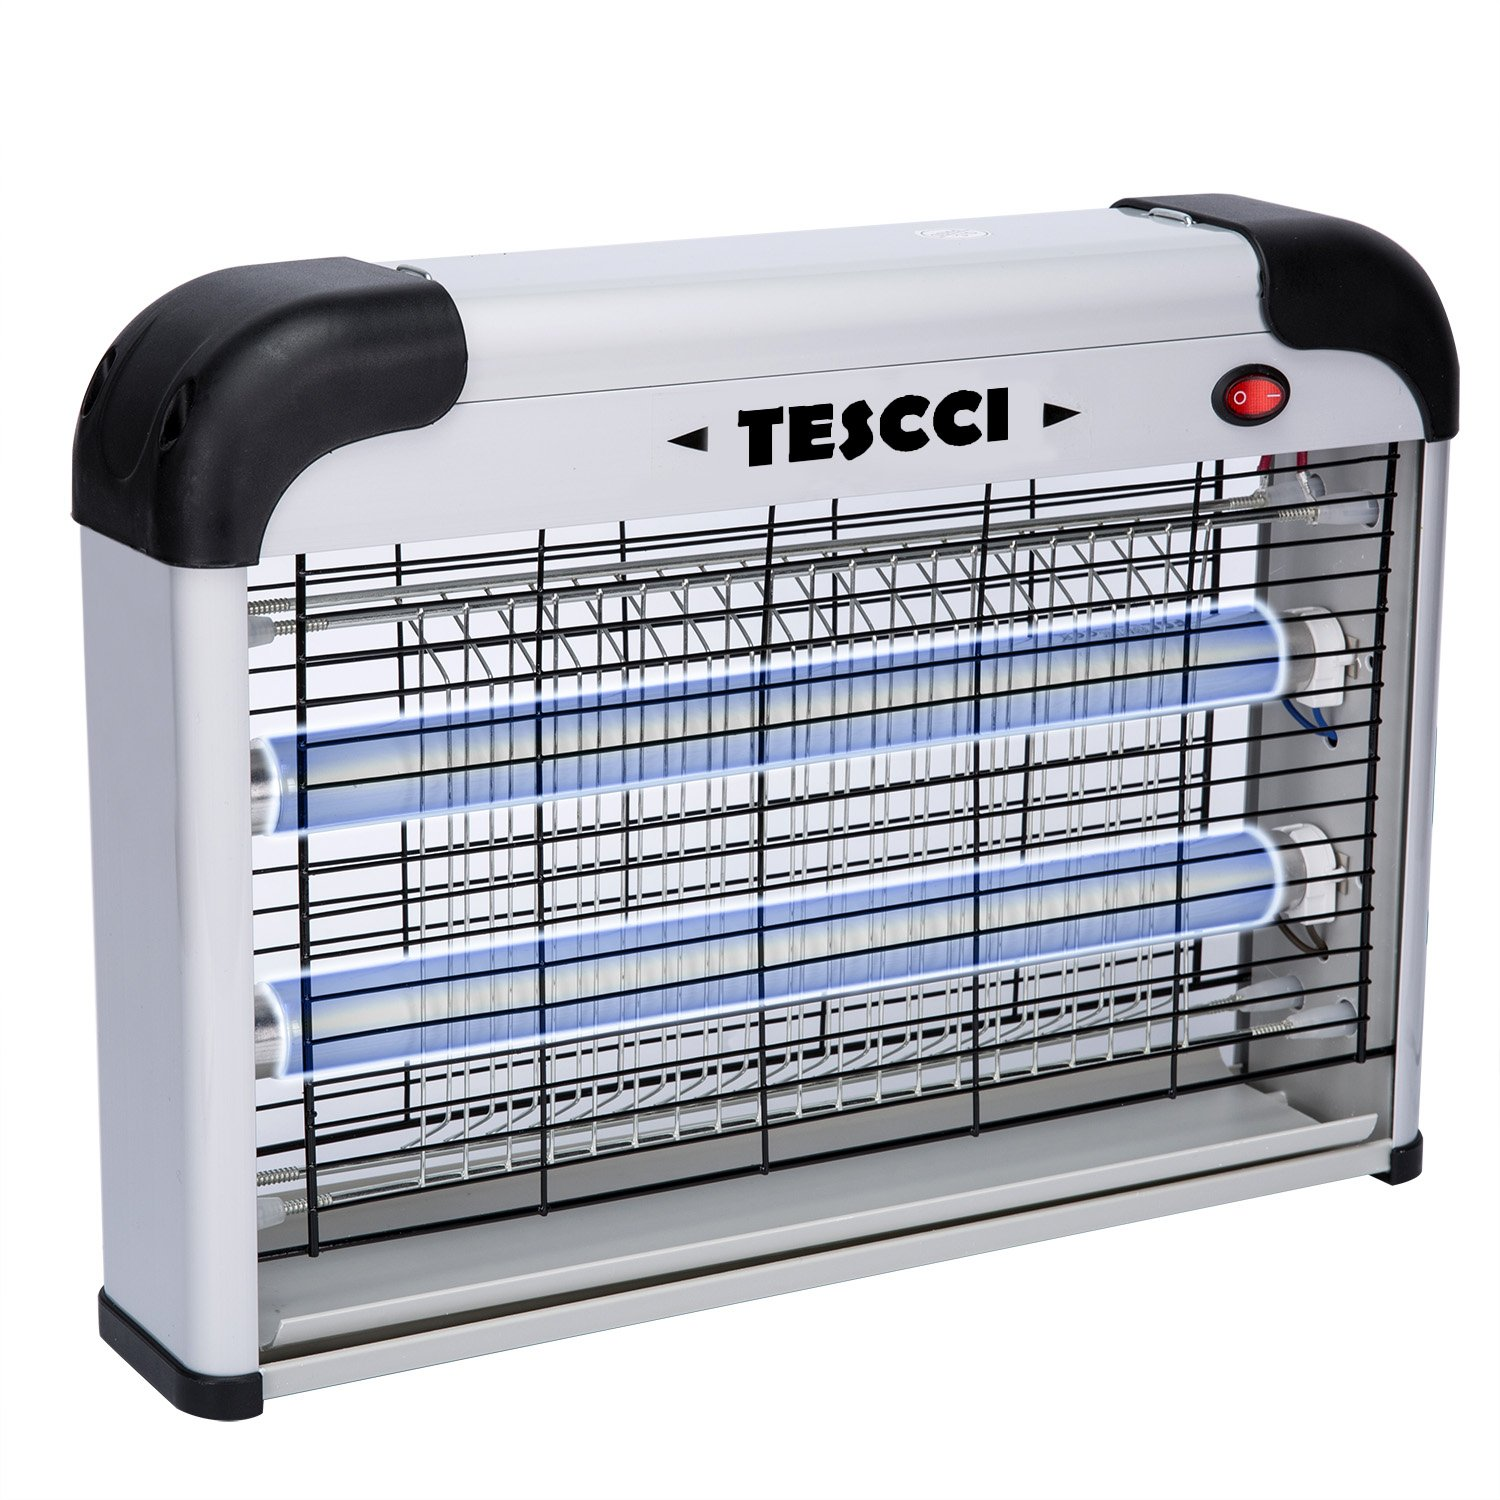 TESCCI - 20W Electronic Bug Zapper